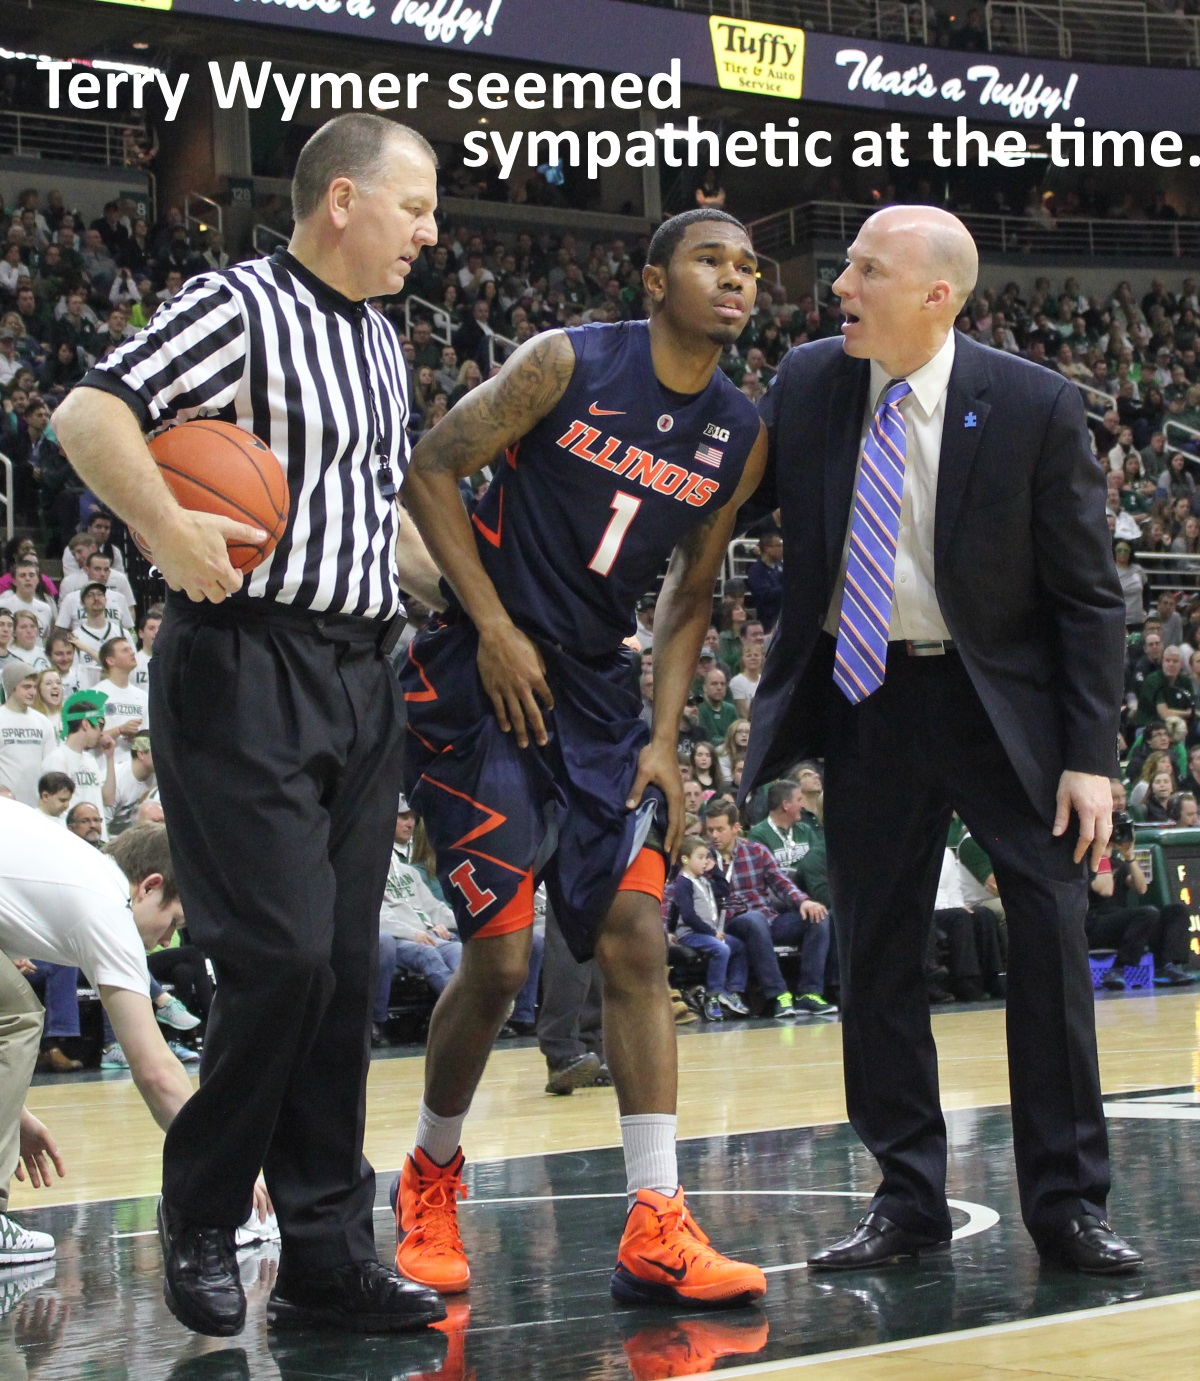 Terry Wymer seemed sympathetic